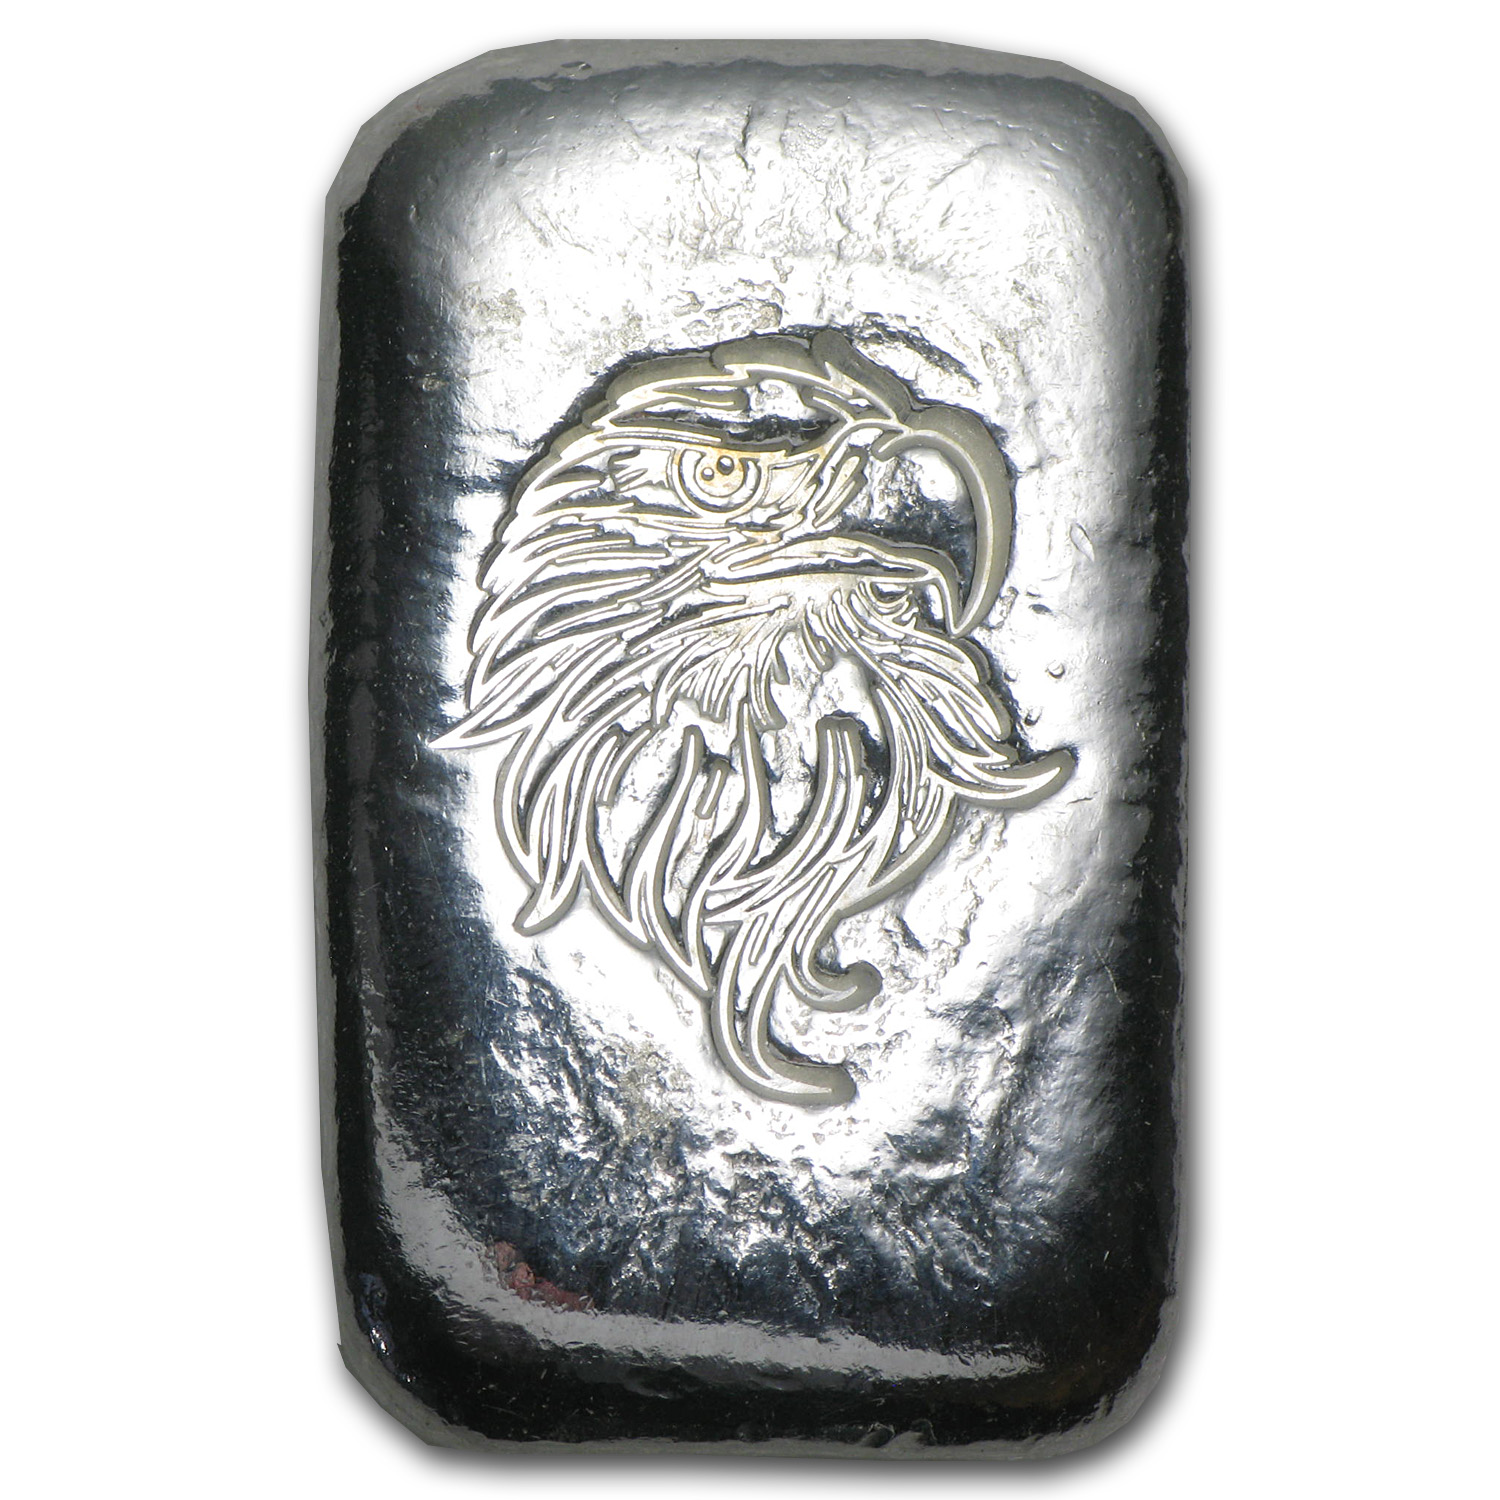 1 oz Silver Bars - Atlantis Mint (Eagle Head)